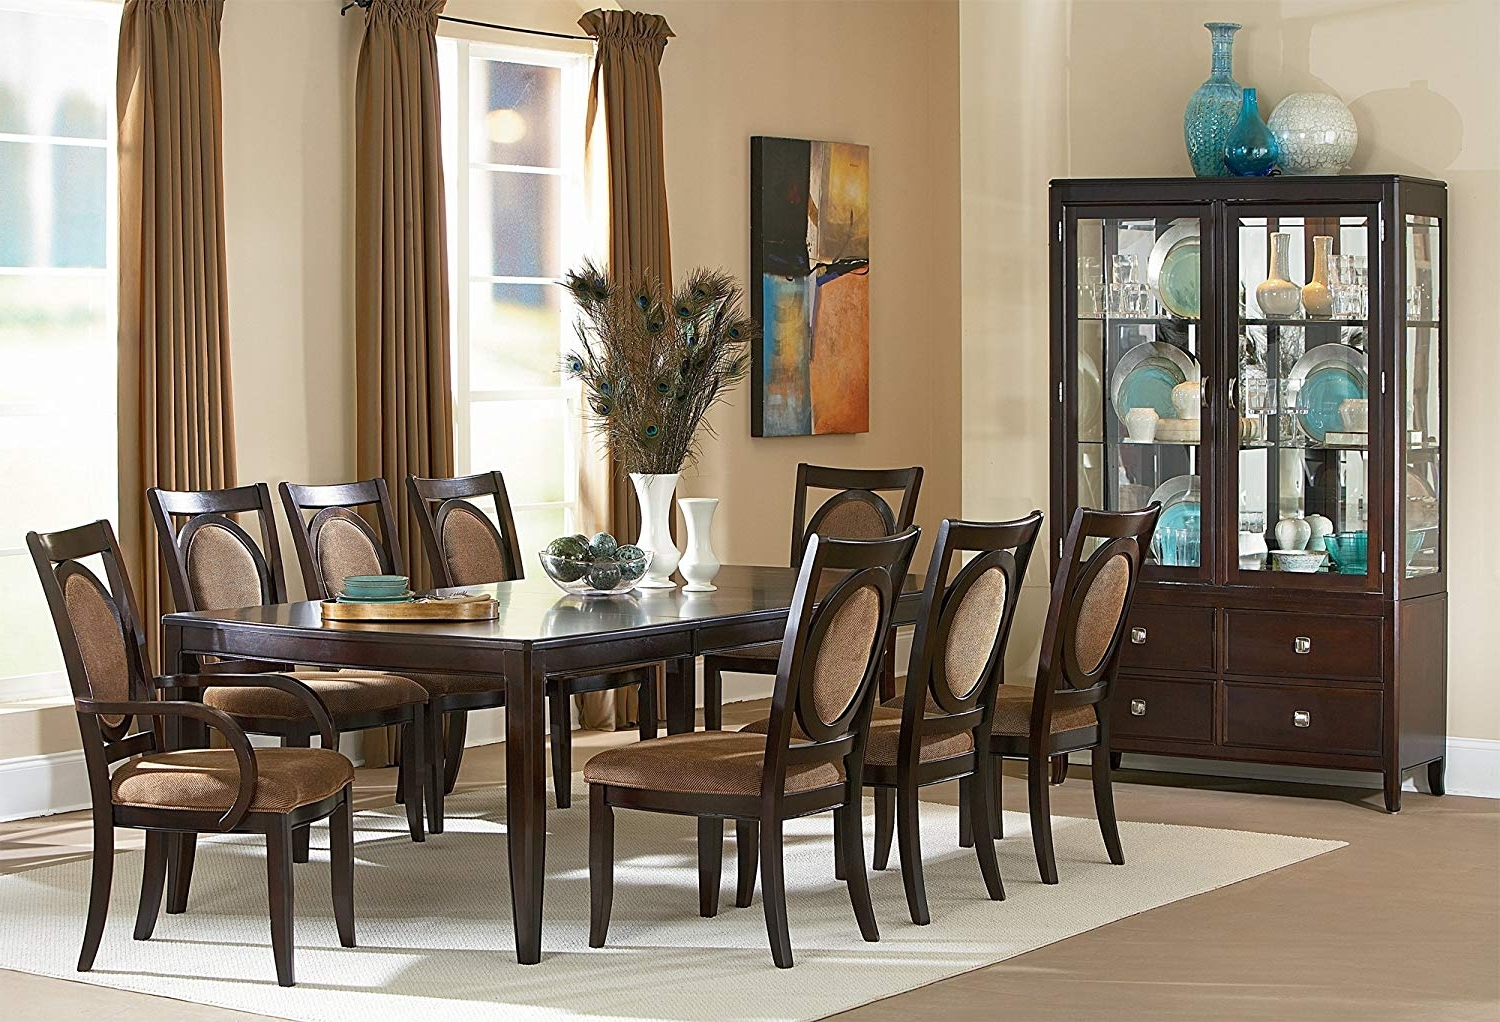 Dining Tables Set For 8 Intended For Well Known Amazon – Steve Silver Company Montblanc Table With Two (View 4 of 25)